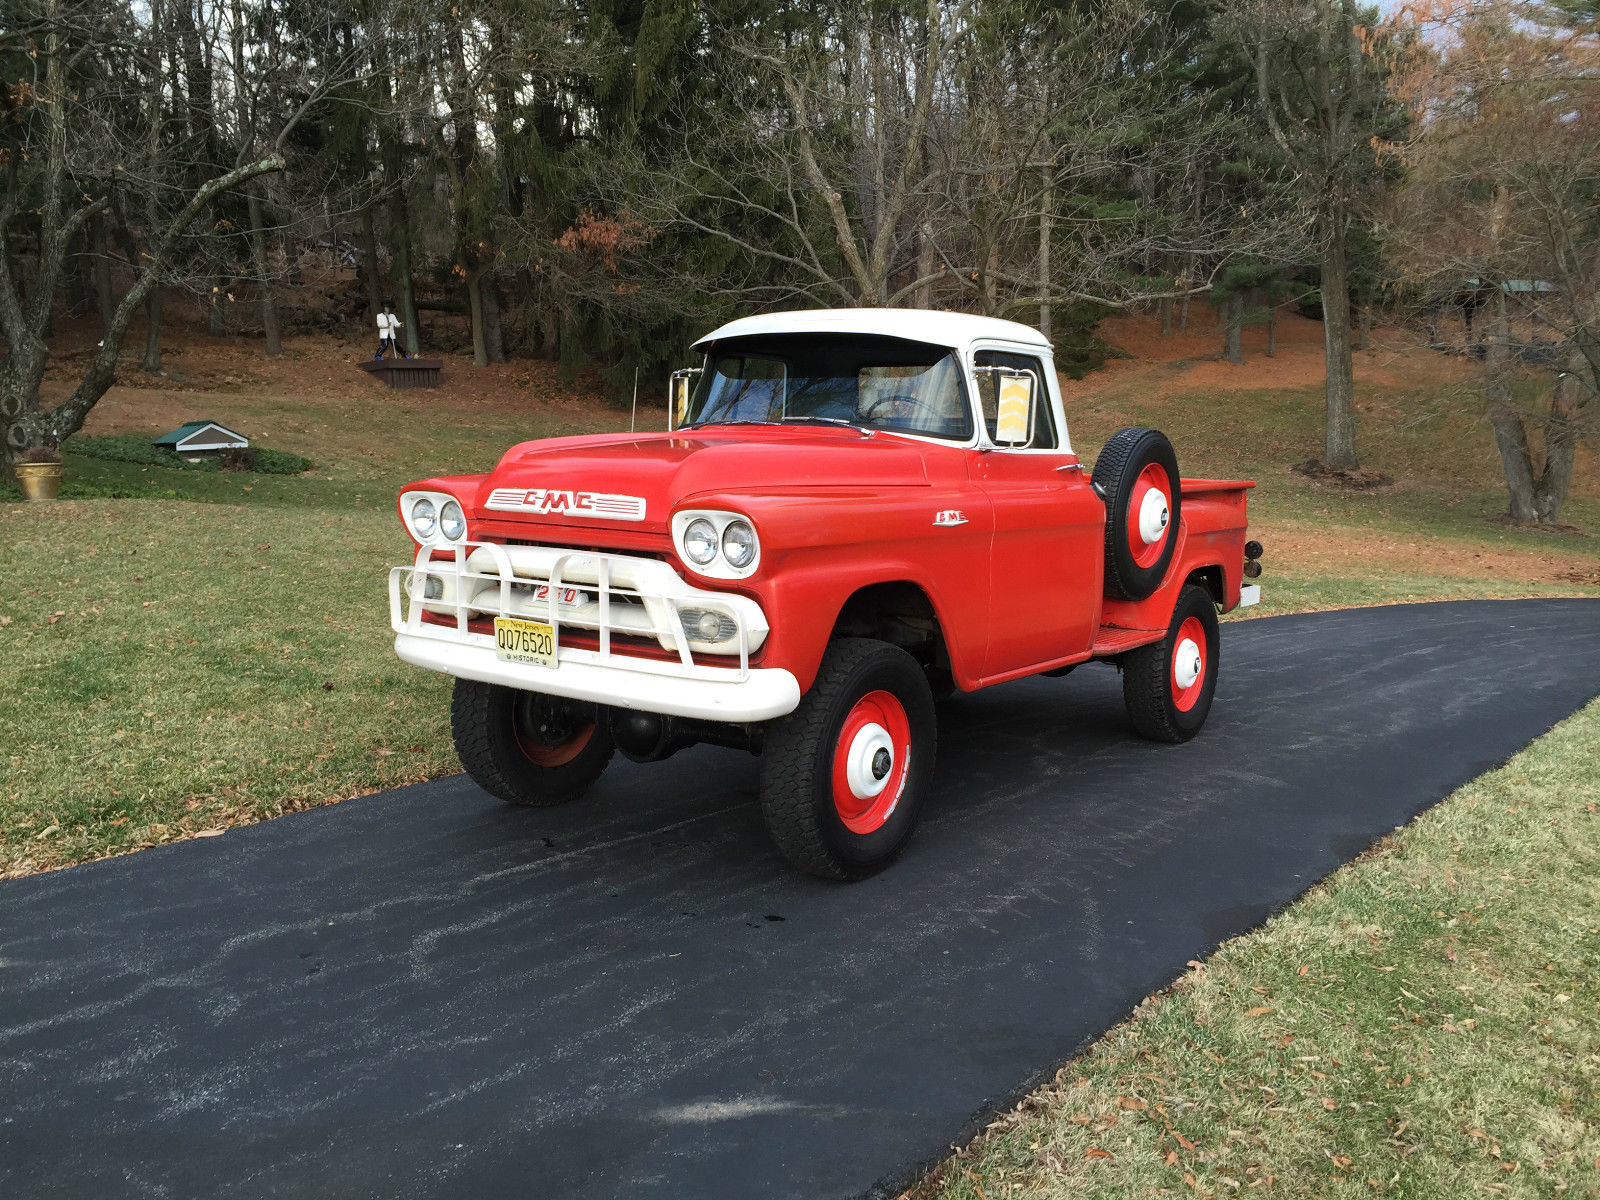 59 NAPCO GMC, Dodge, Chevy, Ford, Plymouth, Packard, Olds ...